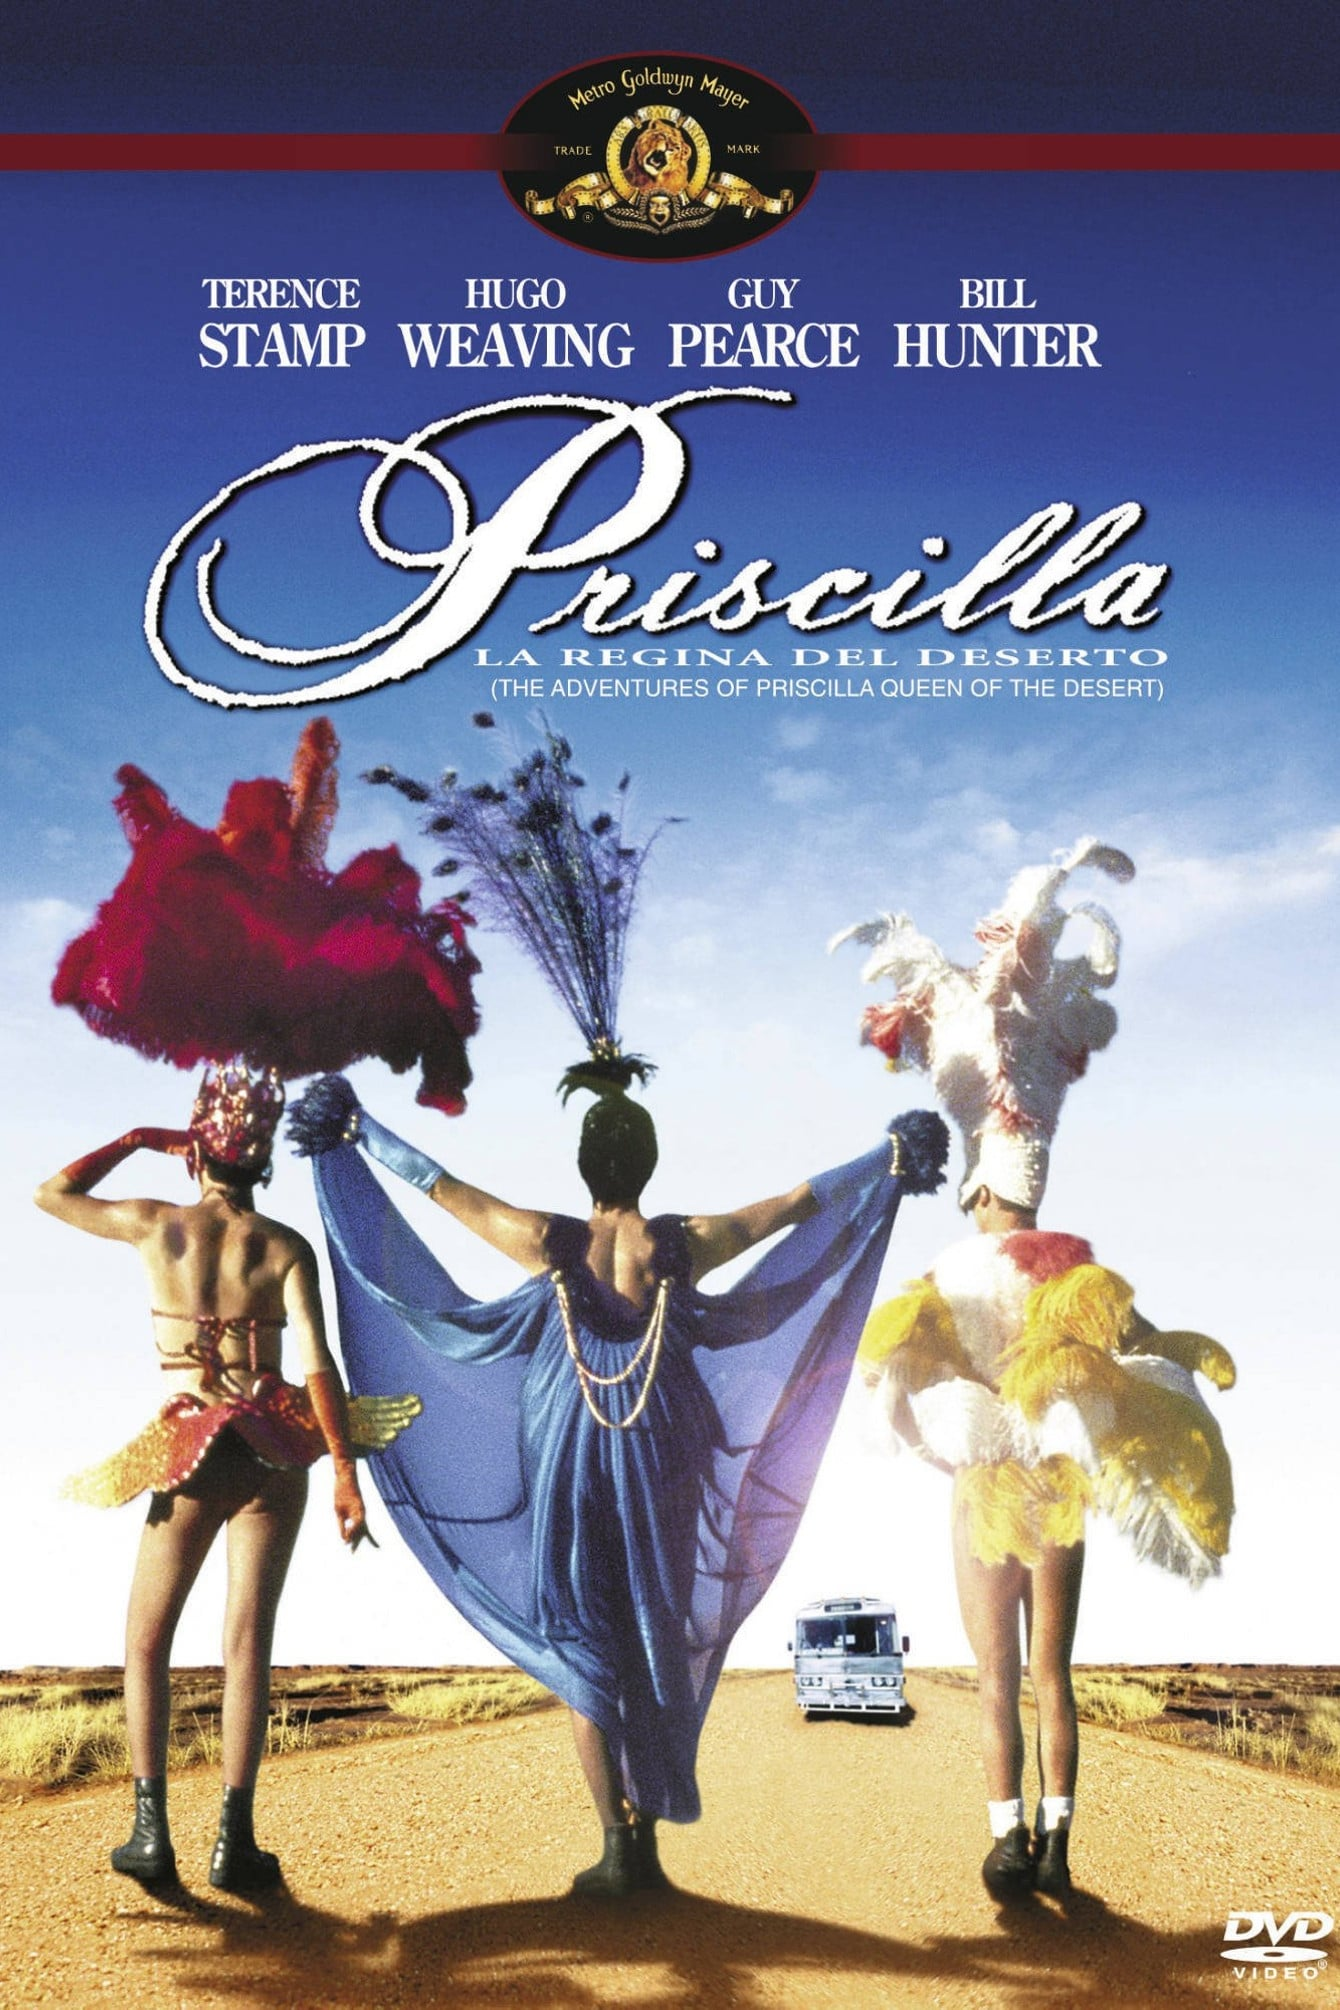 priscilla queen of the desert Find great deals on ebay for priscilla queen of the desert musical soundtrack shop with confidence.